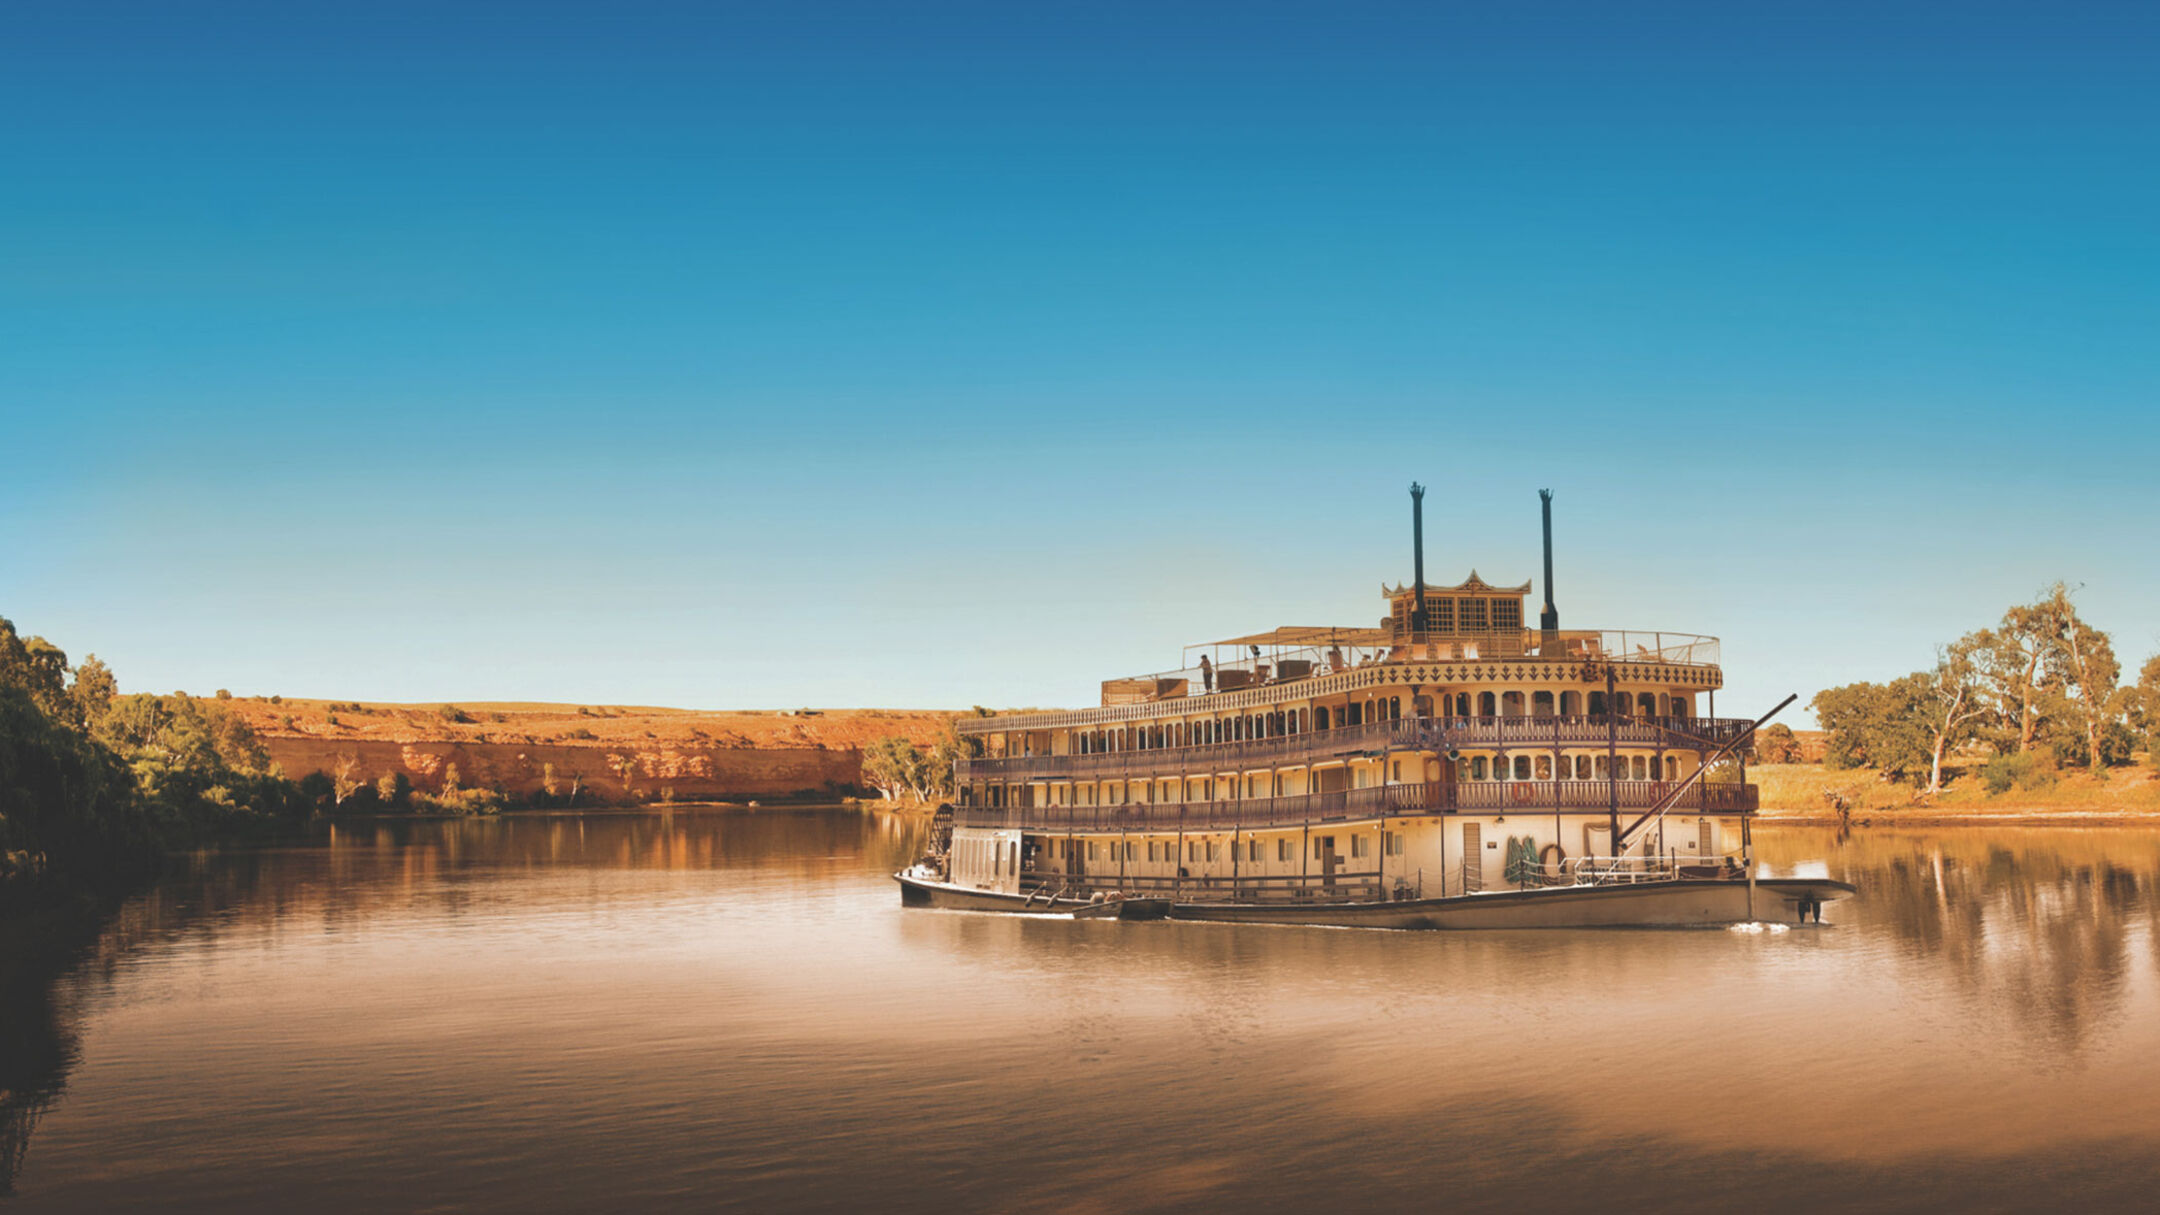 Murray Princess 7 Night Murraylands & Wildlife Cruise - Monday or Friday Departures (Outside Cabin)